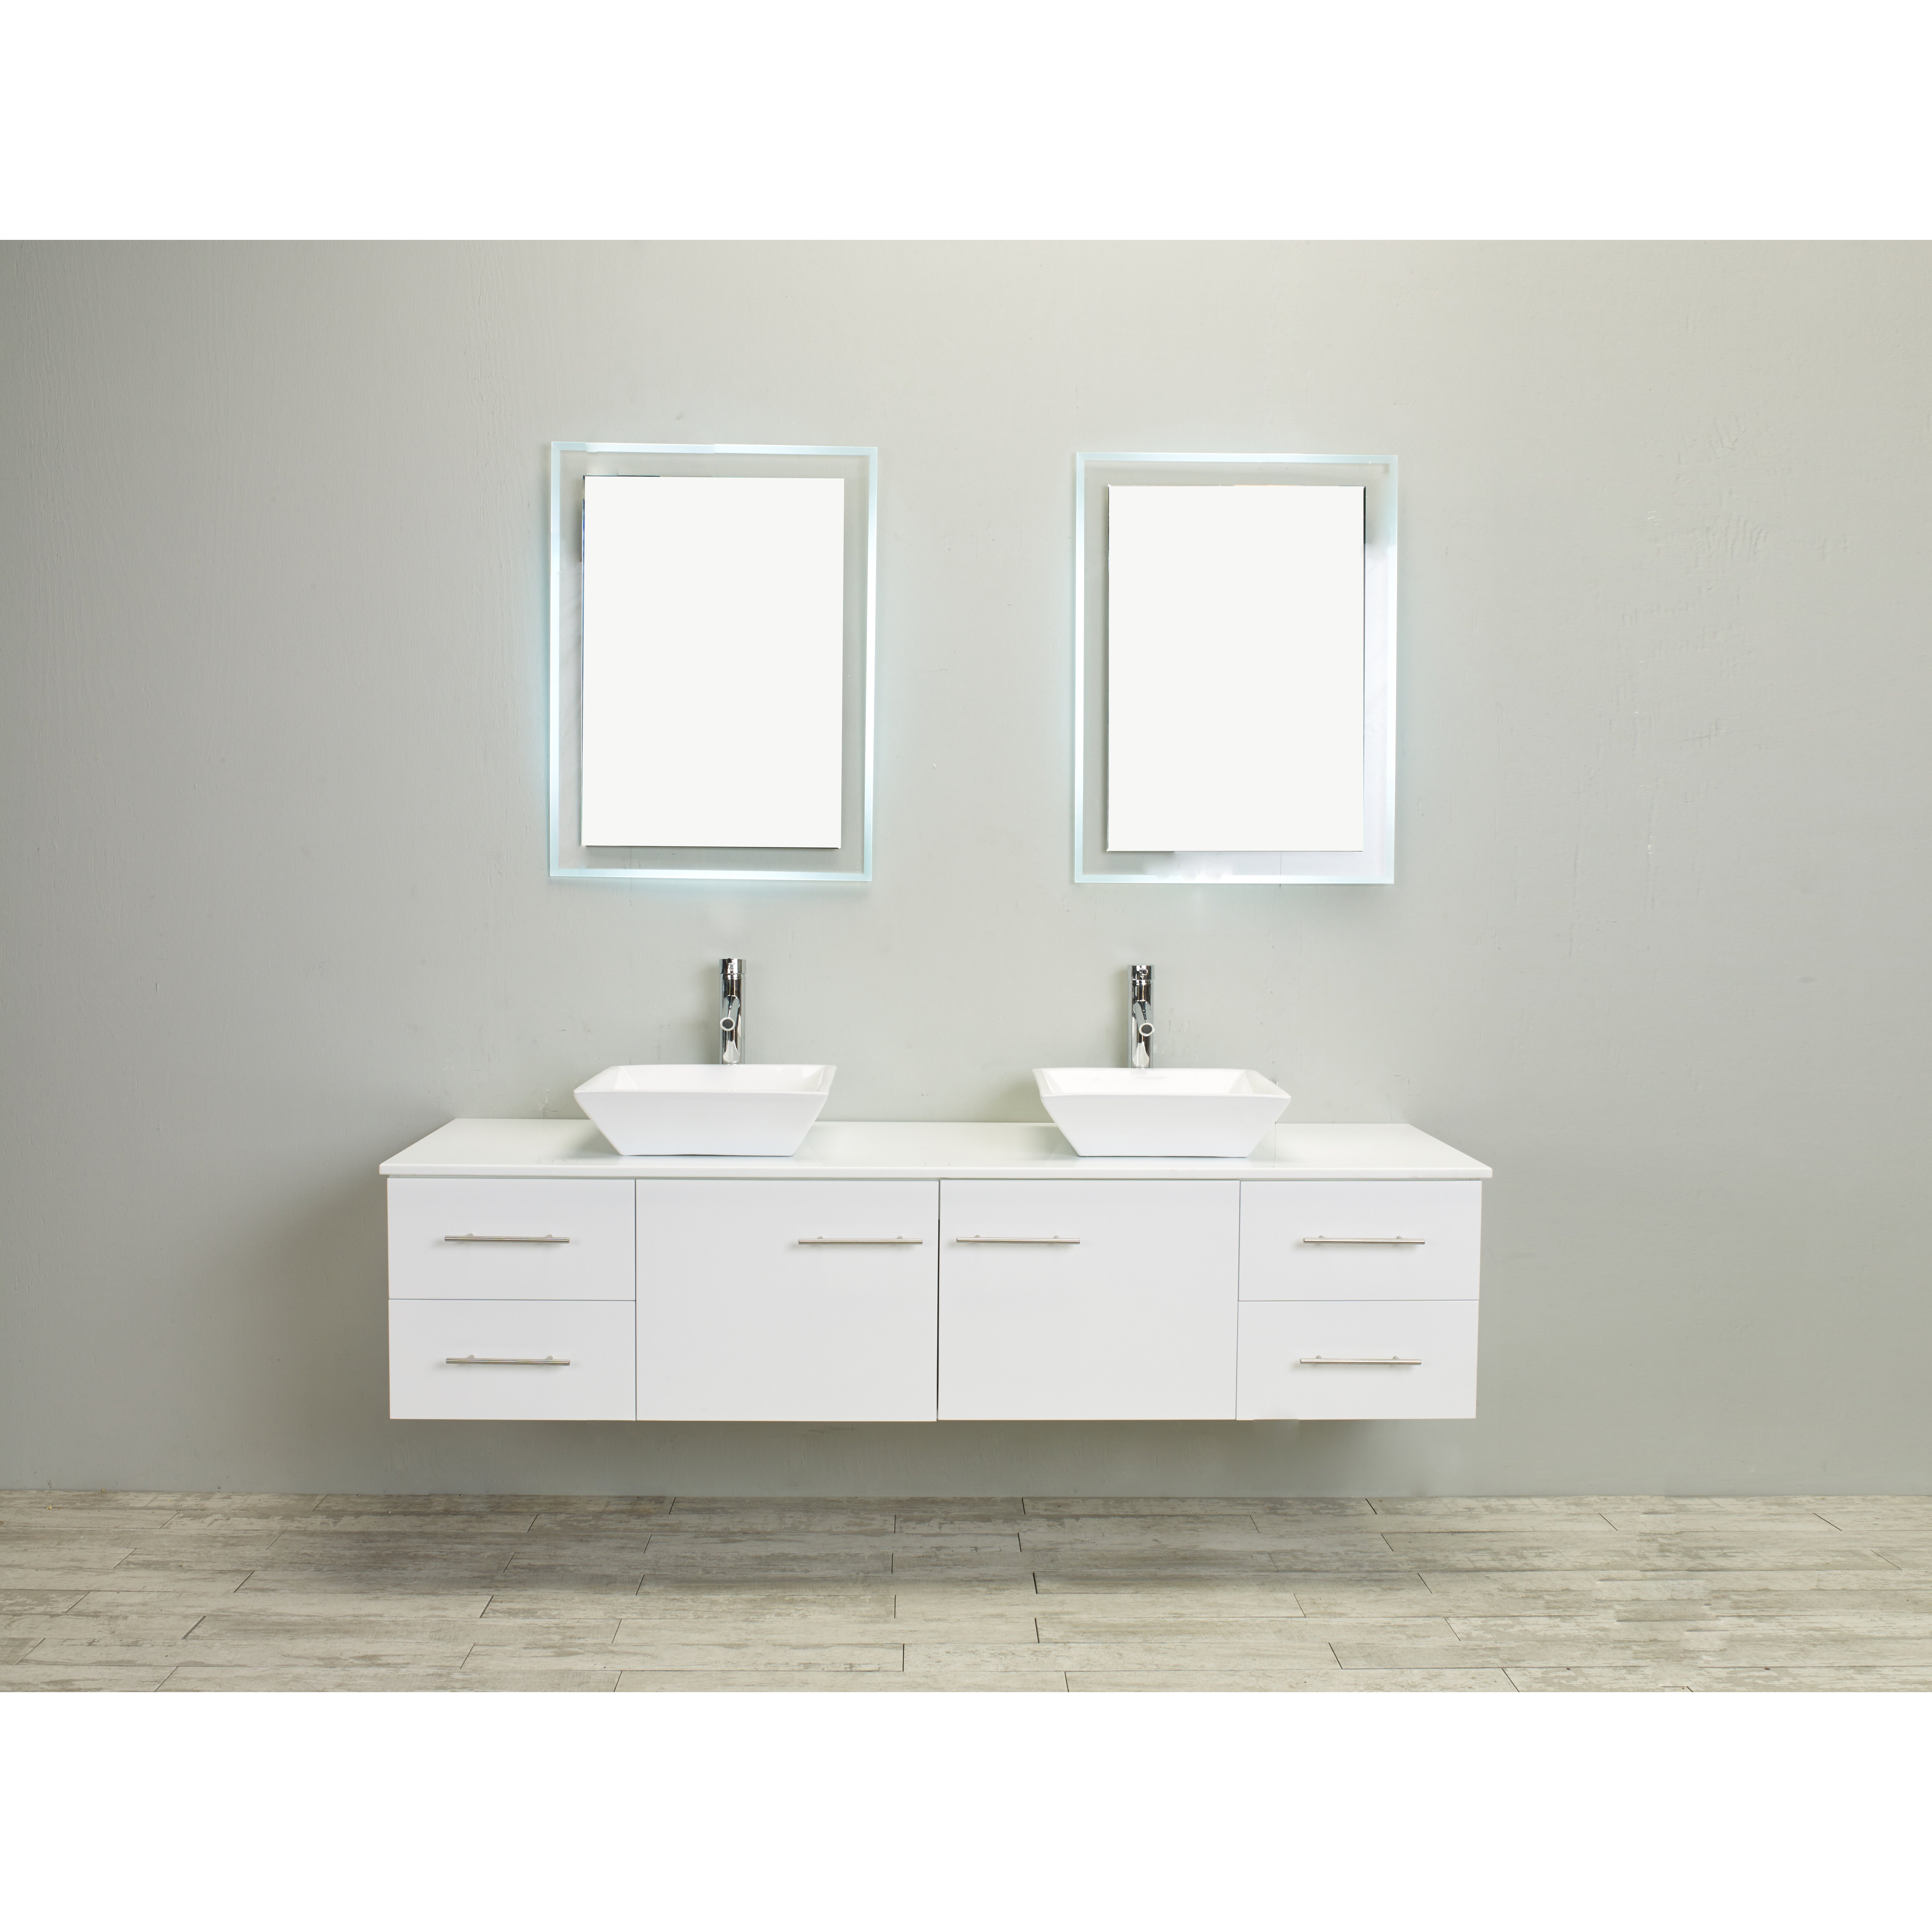 Bathroom vanity sinks sale ideas medium wood bathroom for Bathroom vanity sinks sale